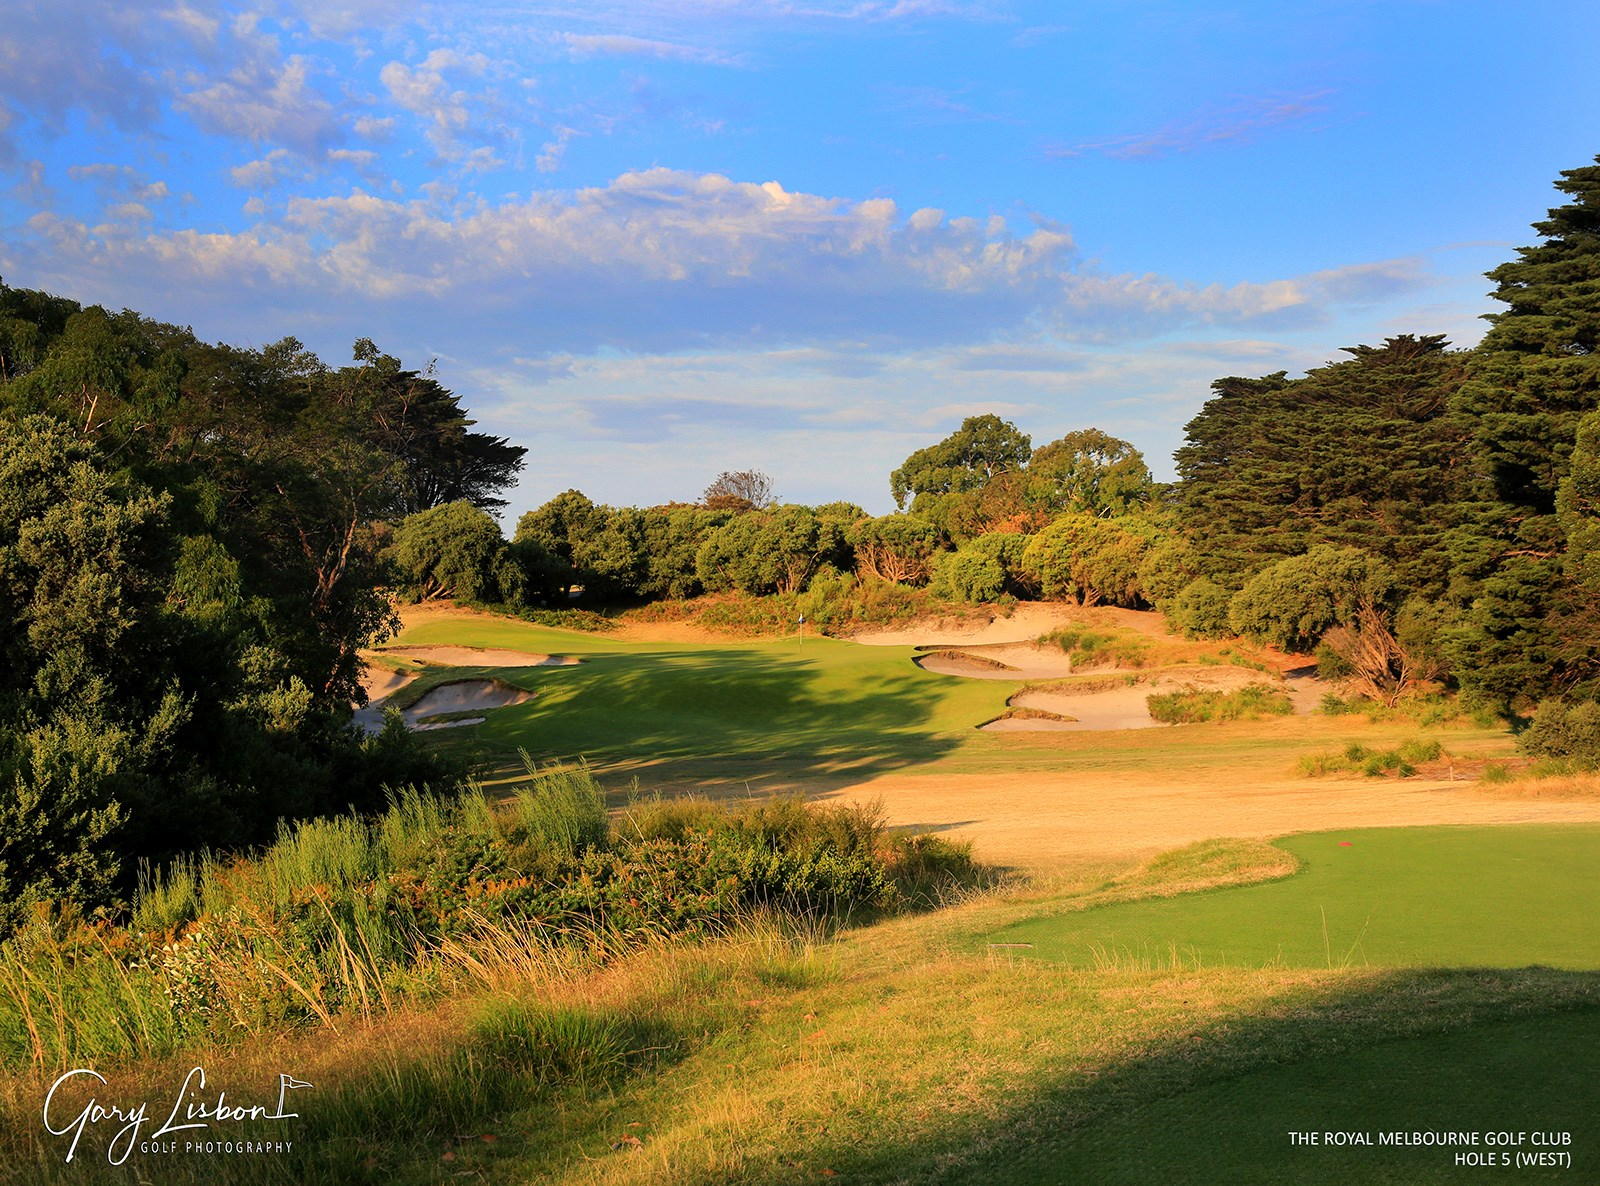 The Royal Melbourne GC (West Course) Hole 5